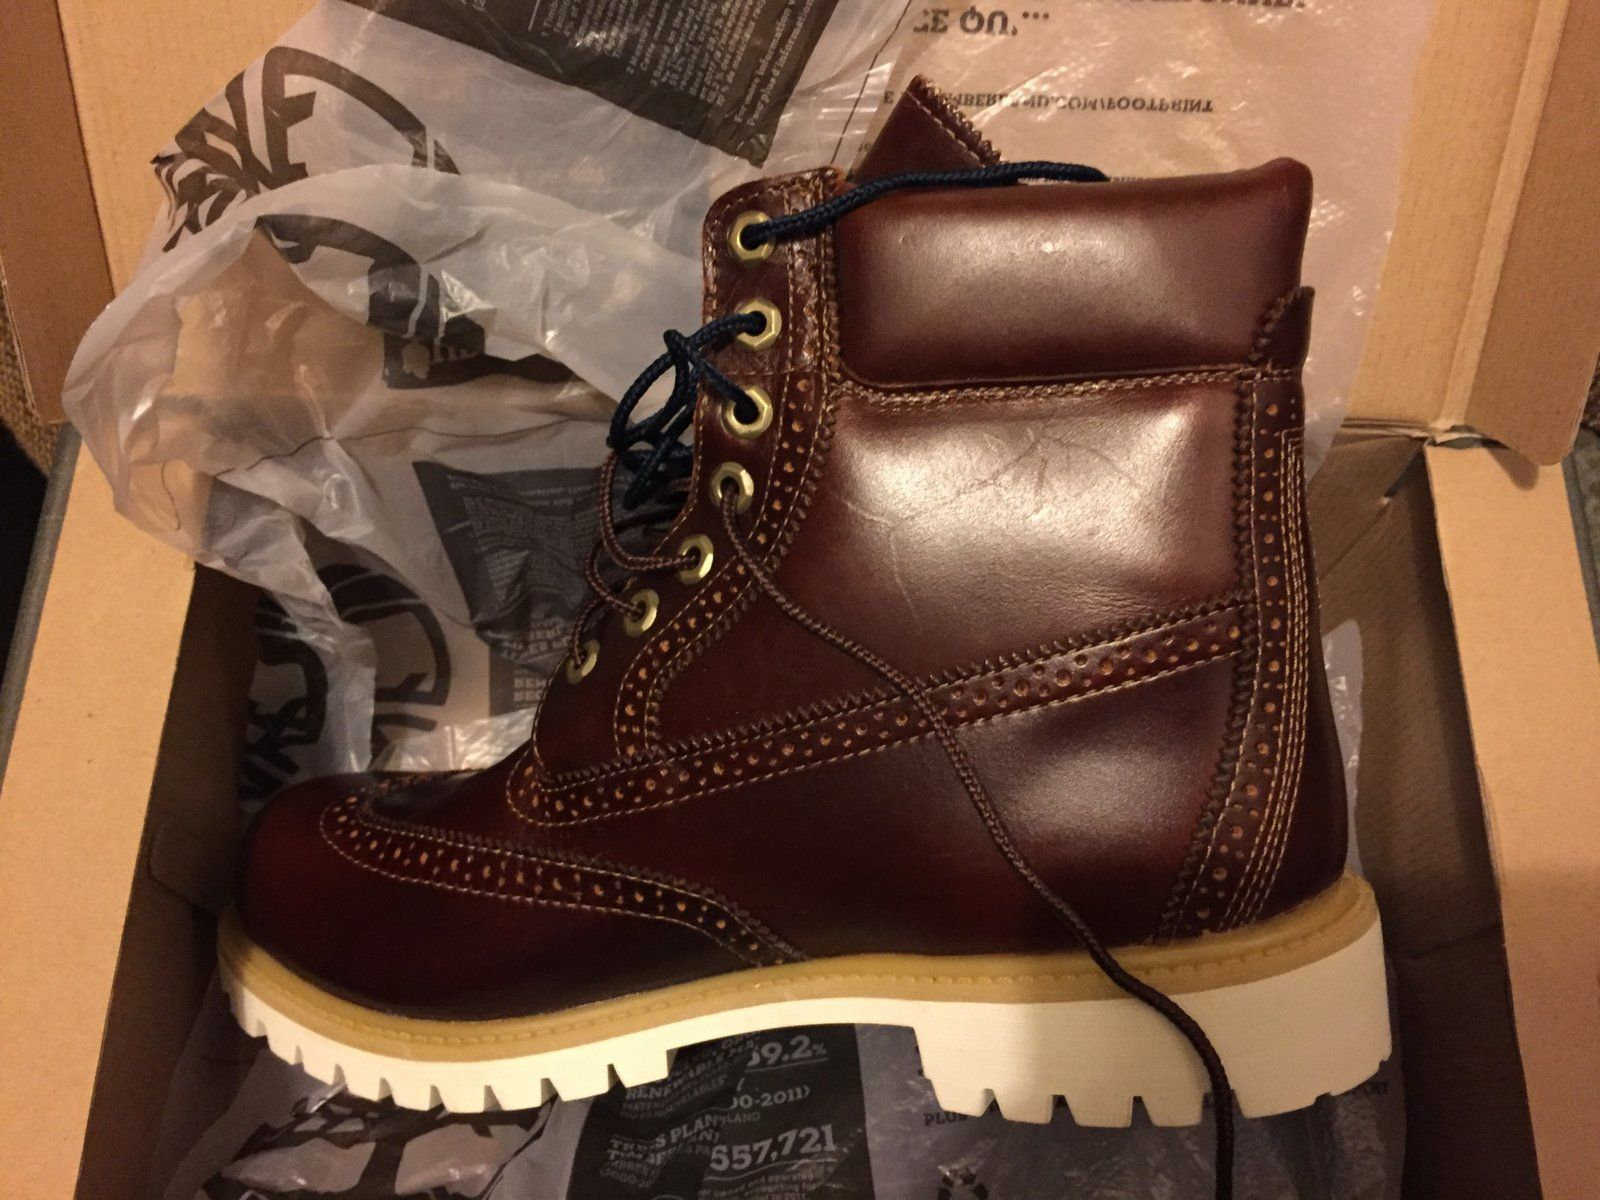 f43b66681088 JPG Any other fans of the Timberland 6 inch boot  - IMG 2703.